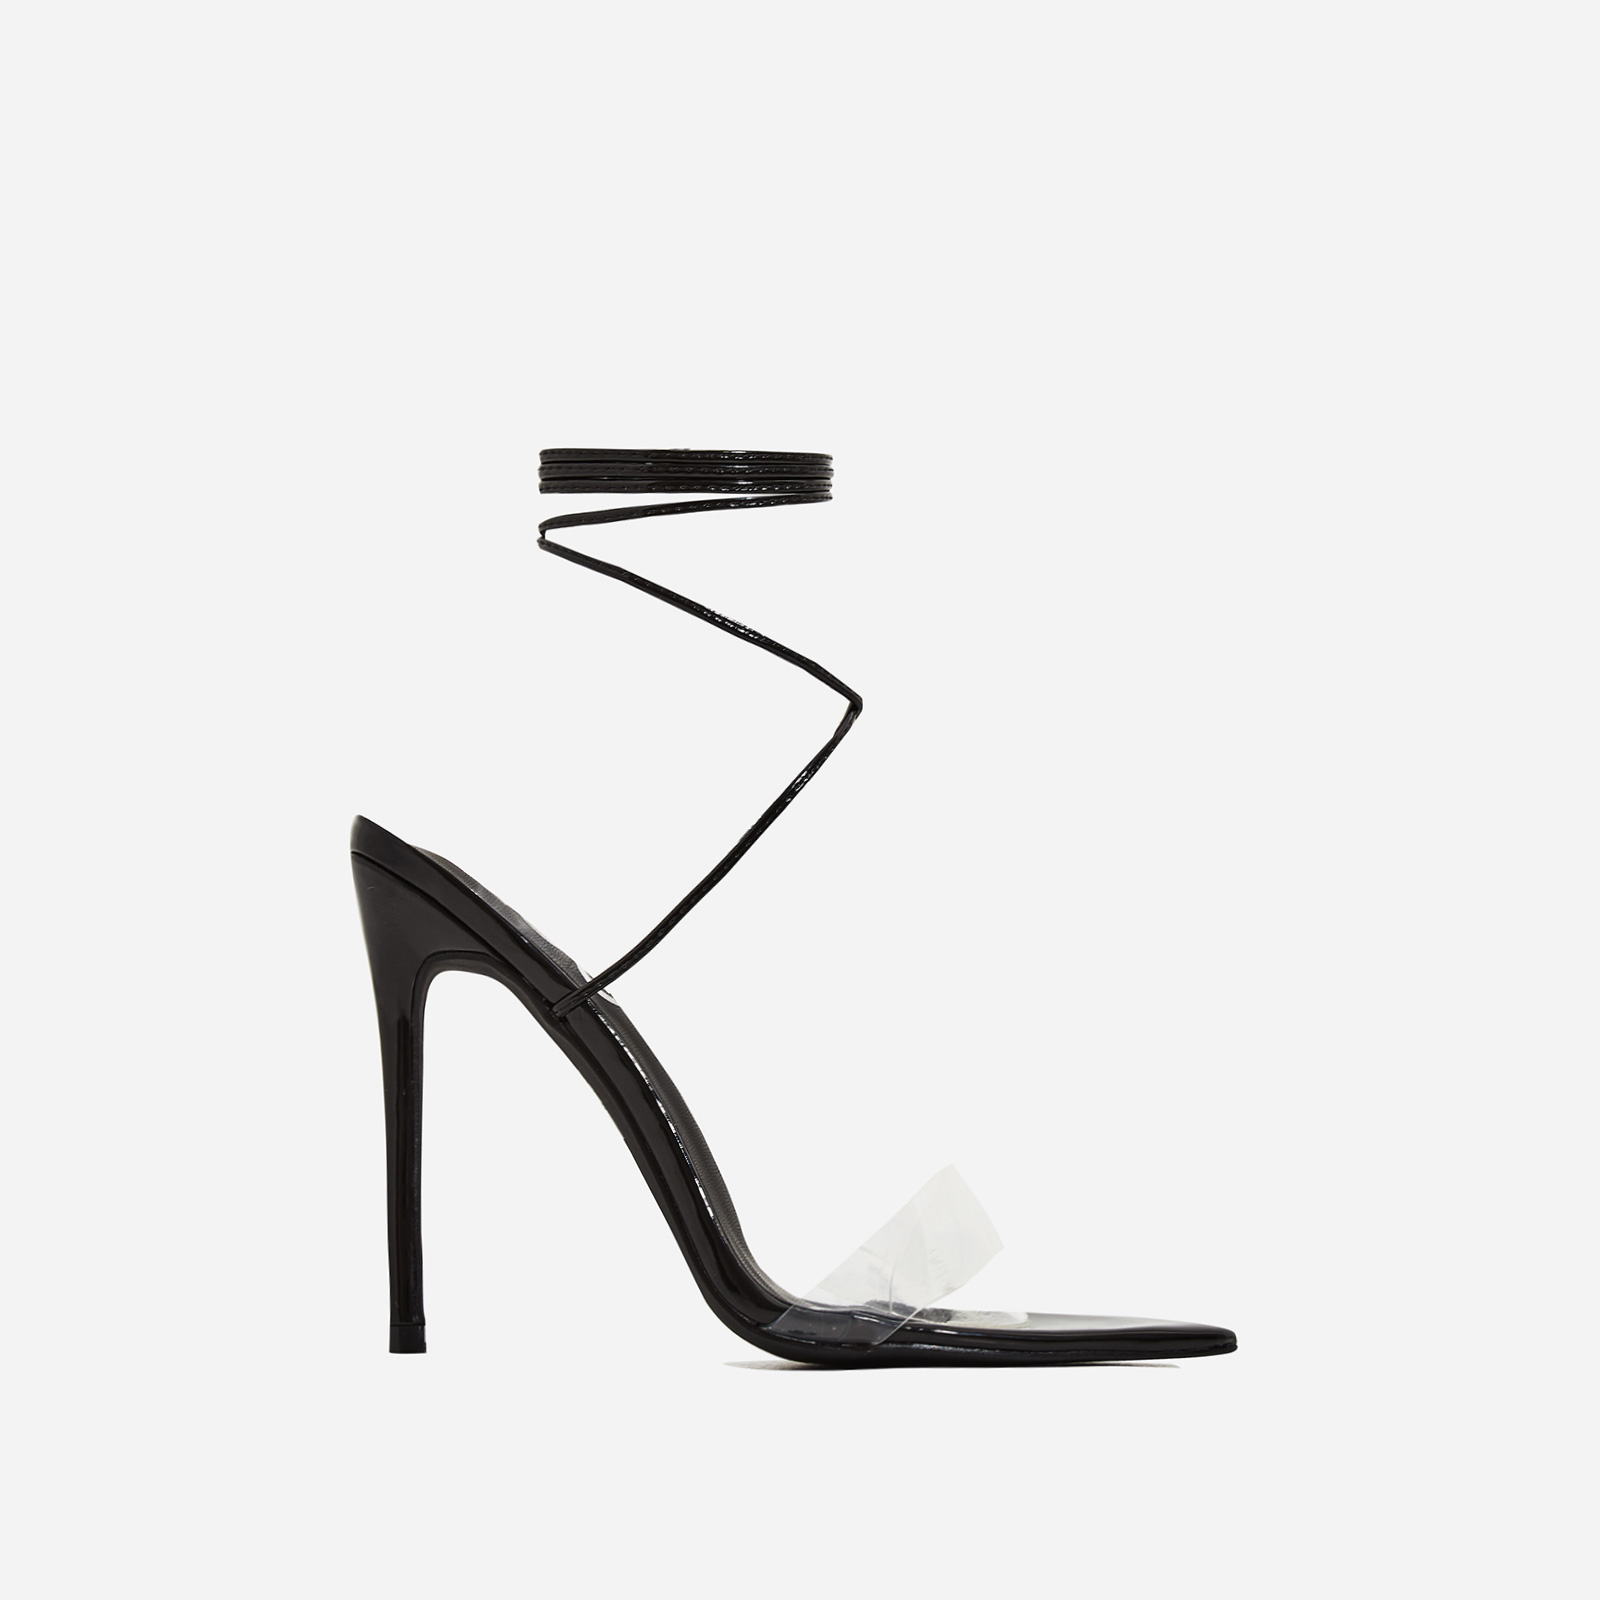 Miami Lace Up Perspex Pointed Heel In Black Patent